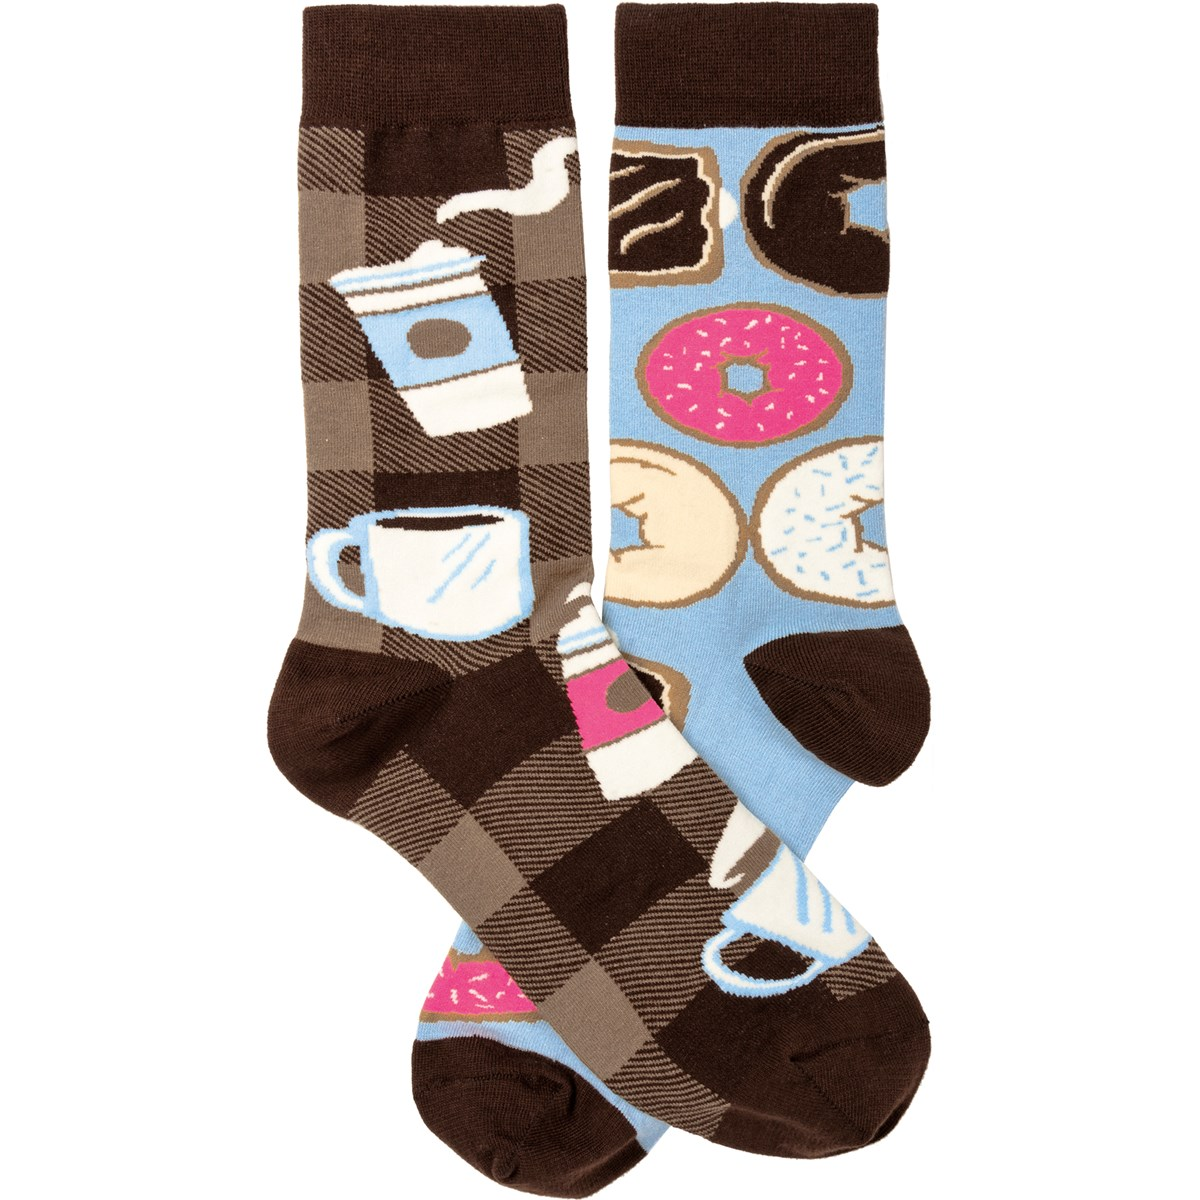 Socks - Coffee & Donuts - One Size Fits Most - Cotton, Nylon, Spandex